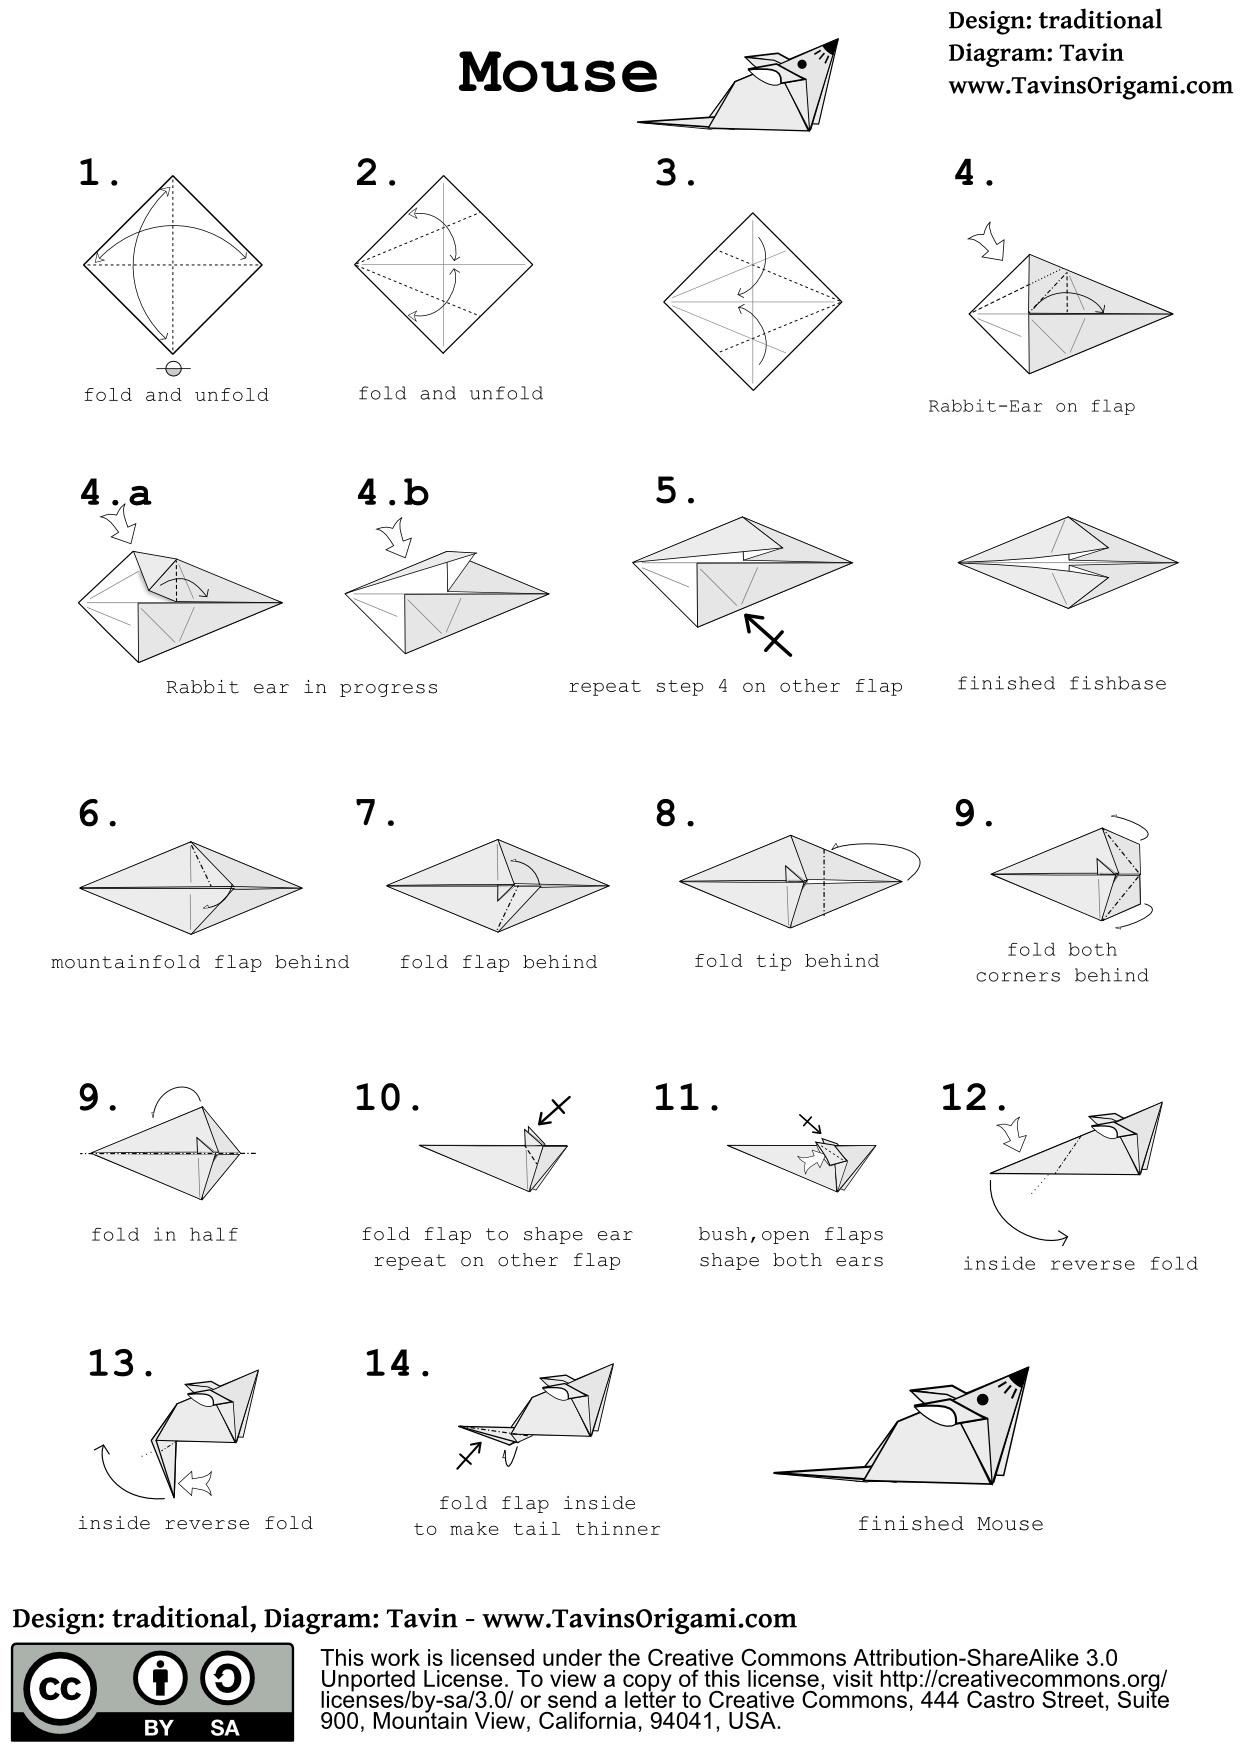 How to Fold a Simple Origami Mouse